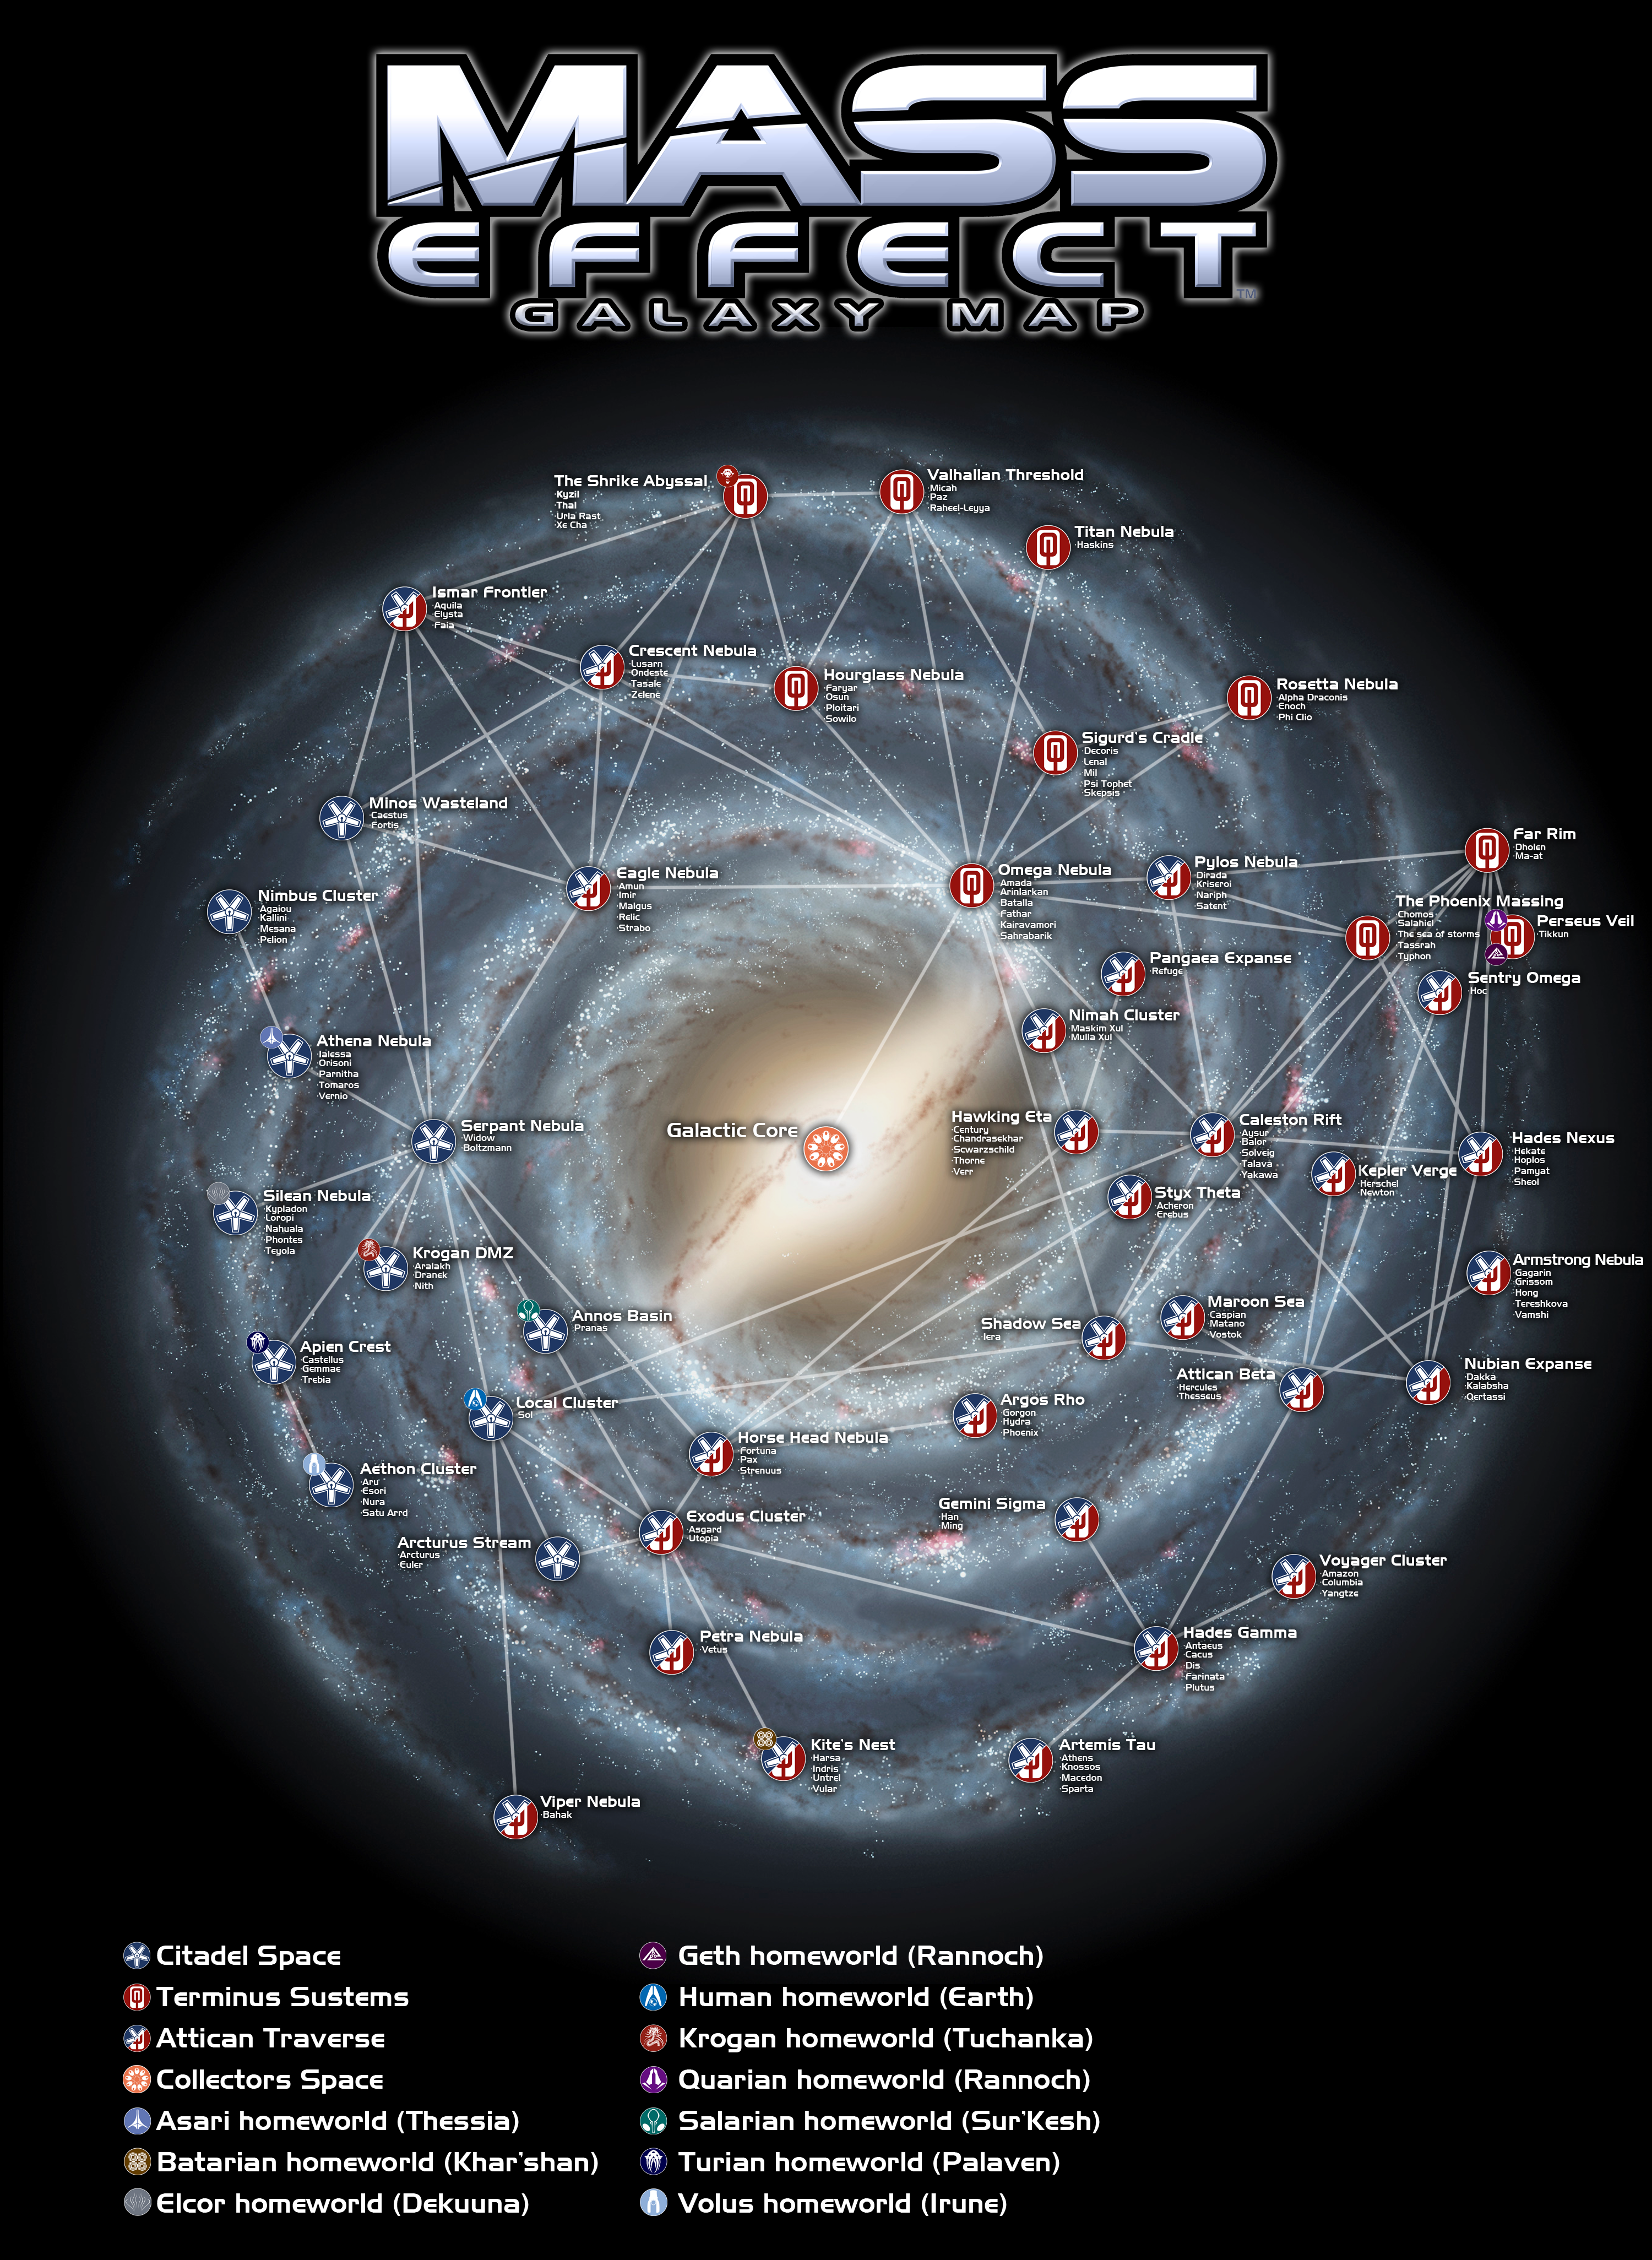 mass effect galaxy map by engorn. mass effect galaxy map by engorn on deviantart